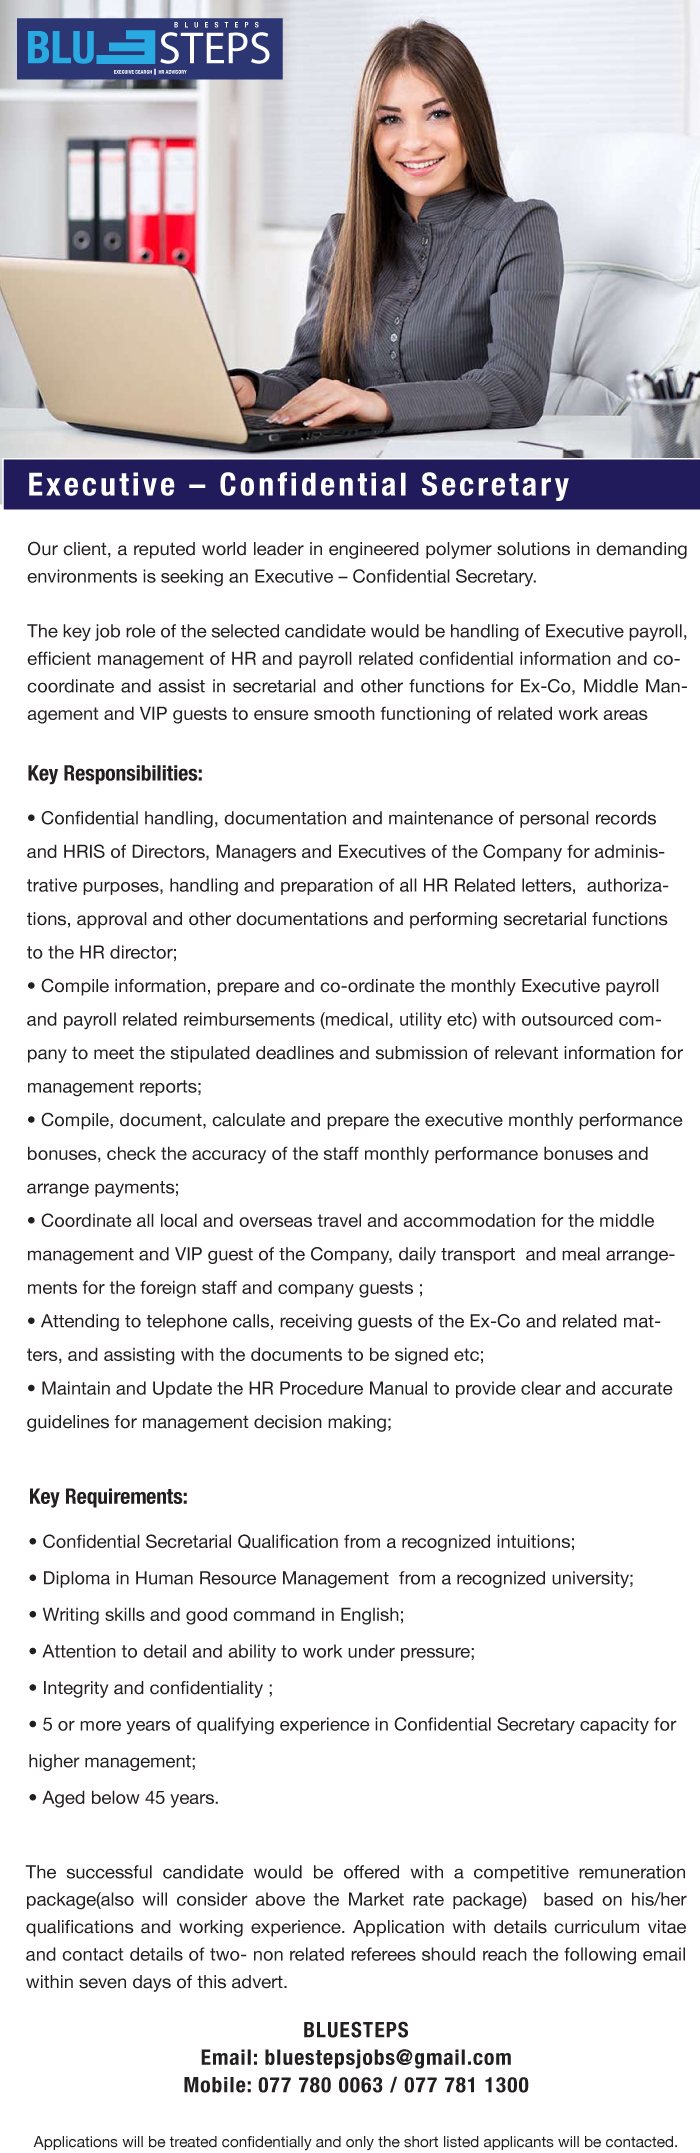 executive confidential secretary job vacancy in sri lanka resource management from a recognized university writing skills and good command in english attention to detail and ability to work under pressure